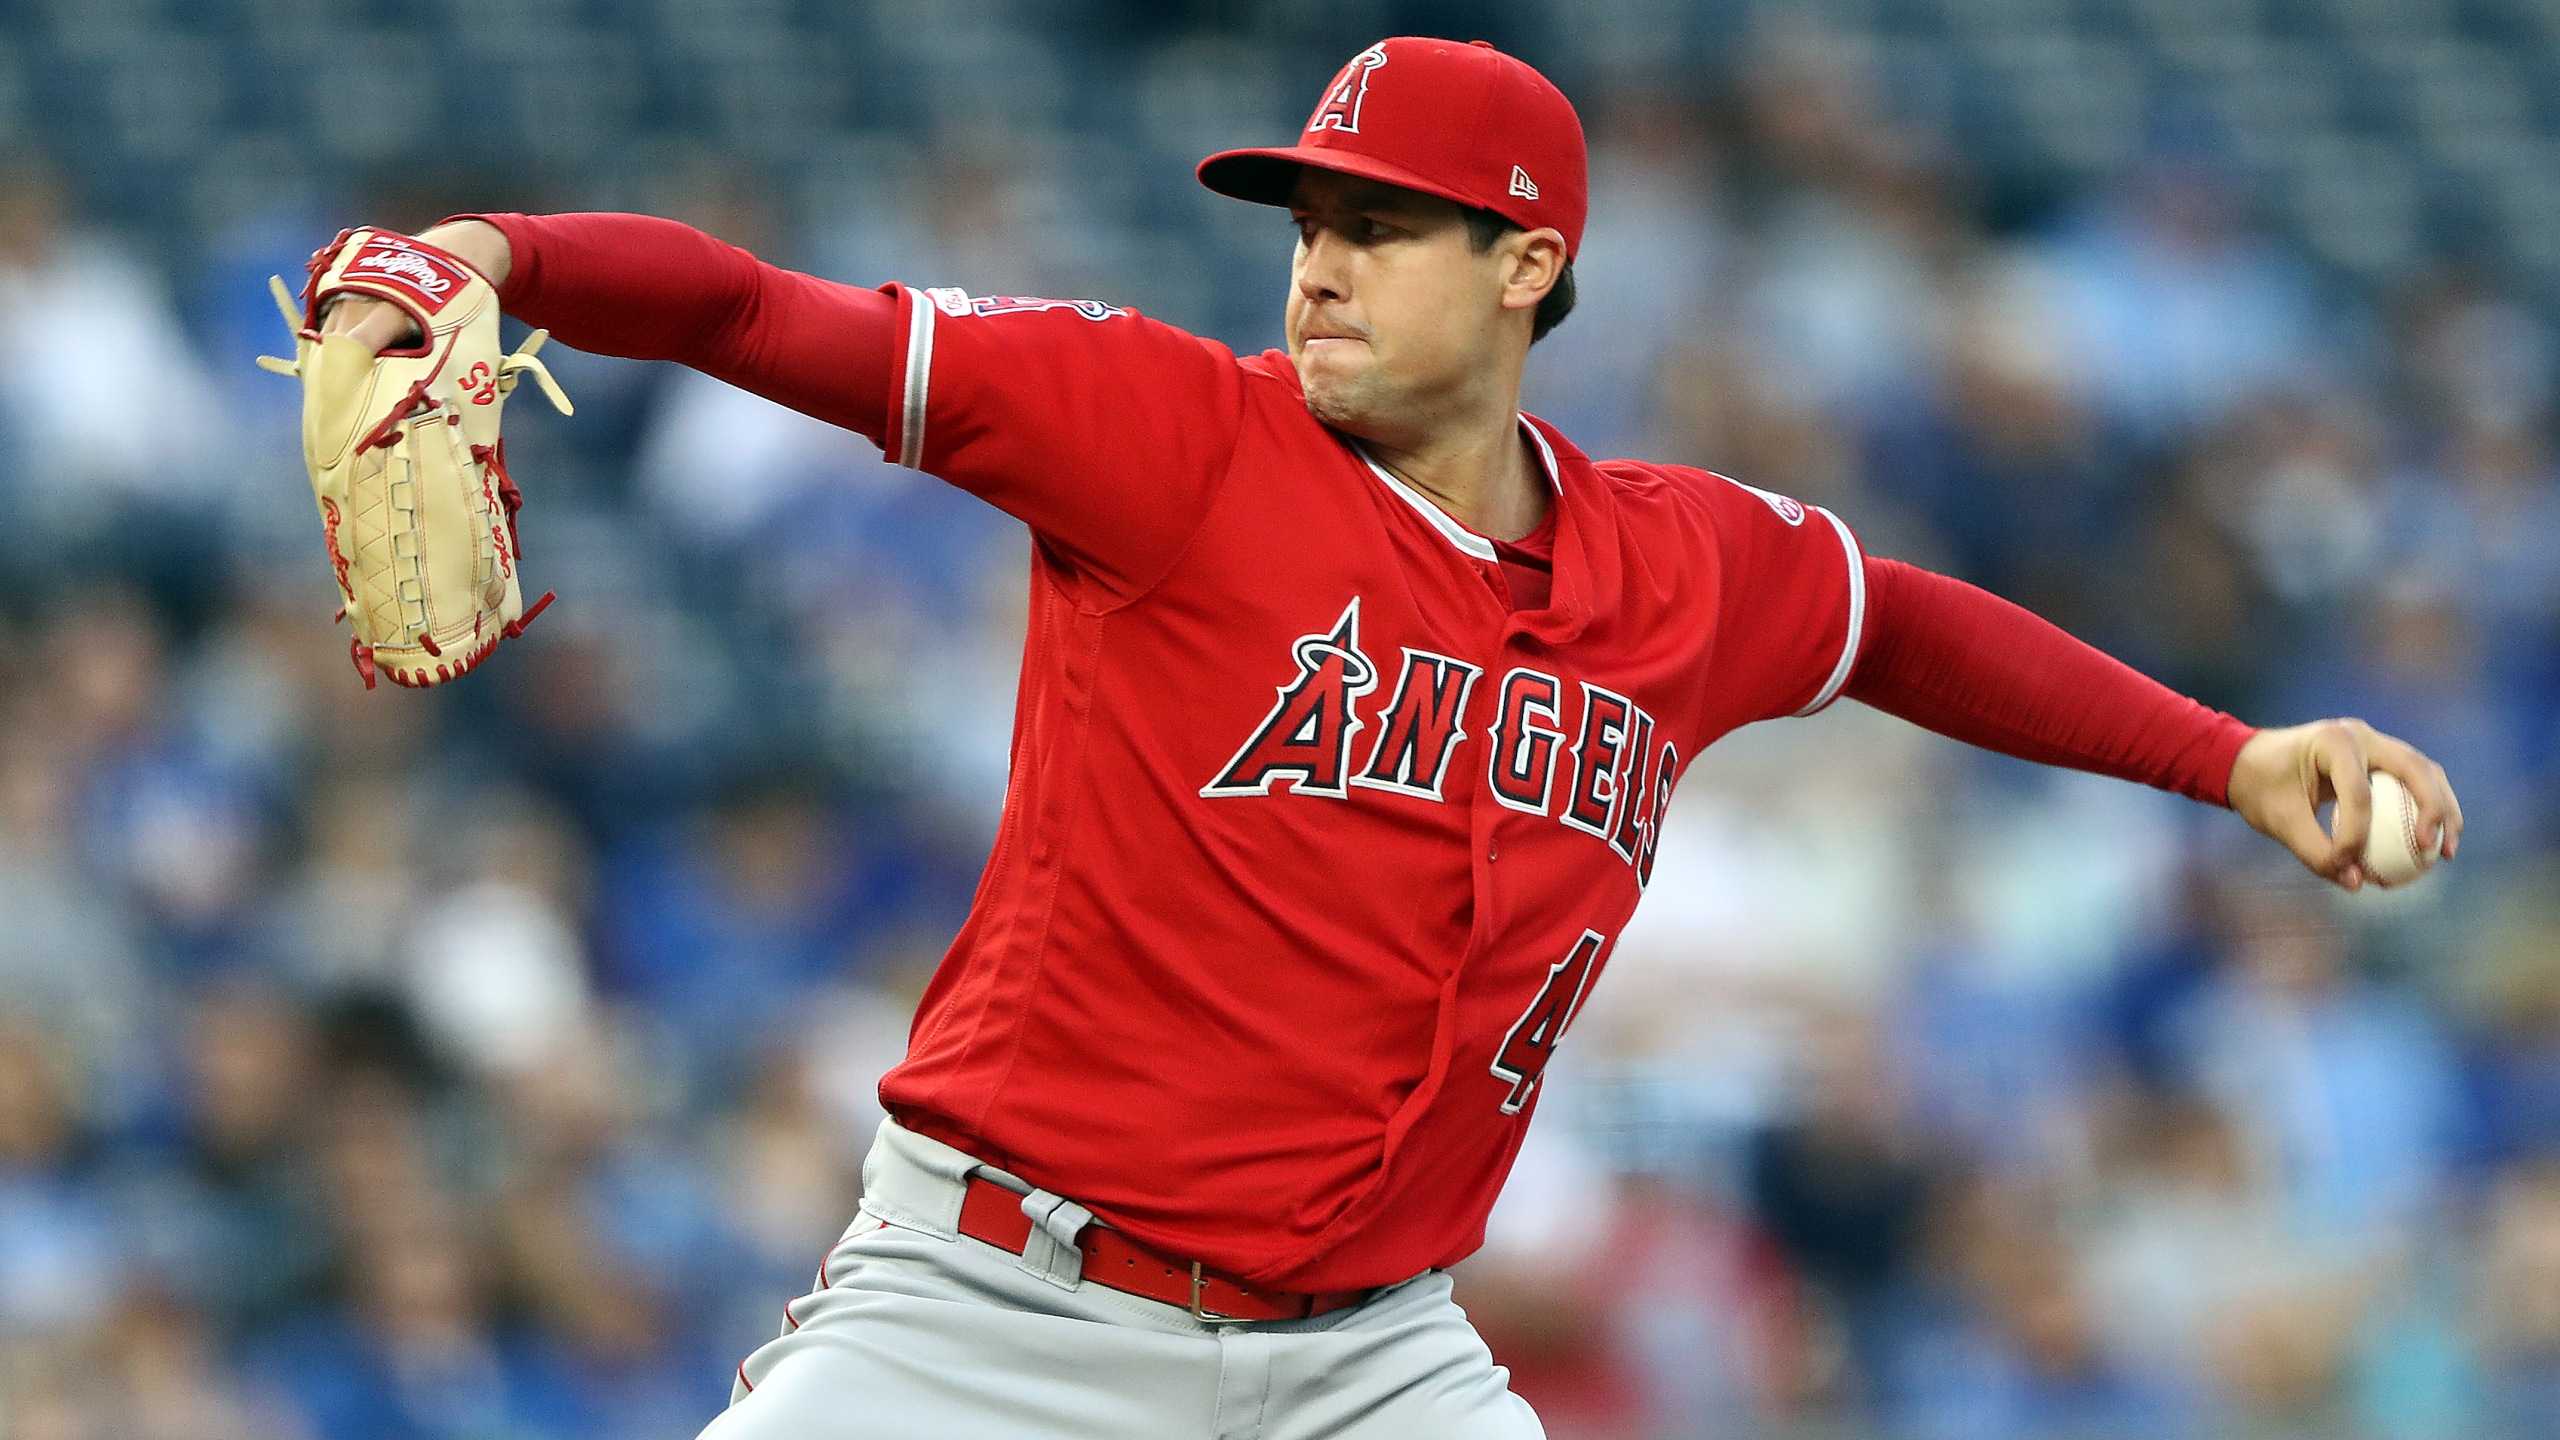 Starting pitcher Tyler Skaggs of the Los Angeles Angels pitches during the 1st inning of the game against the Kansas City Royals at Kauffman Stadium on April 26, 2019 in Kansas City, Missouri. (Credit: Jamie Squire/Getty Images)